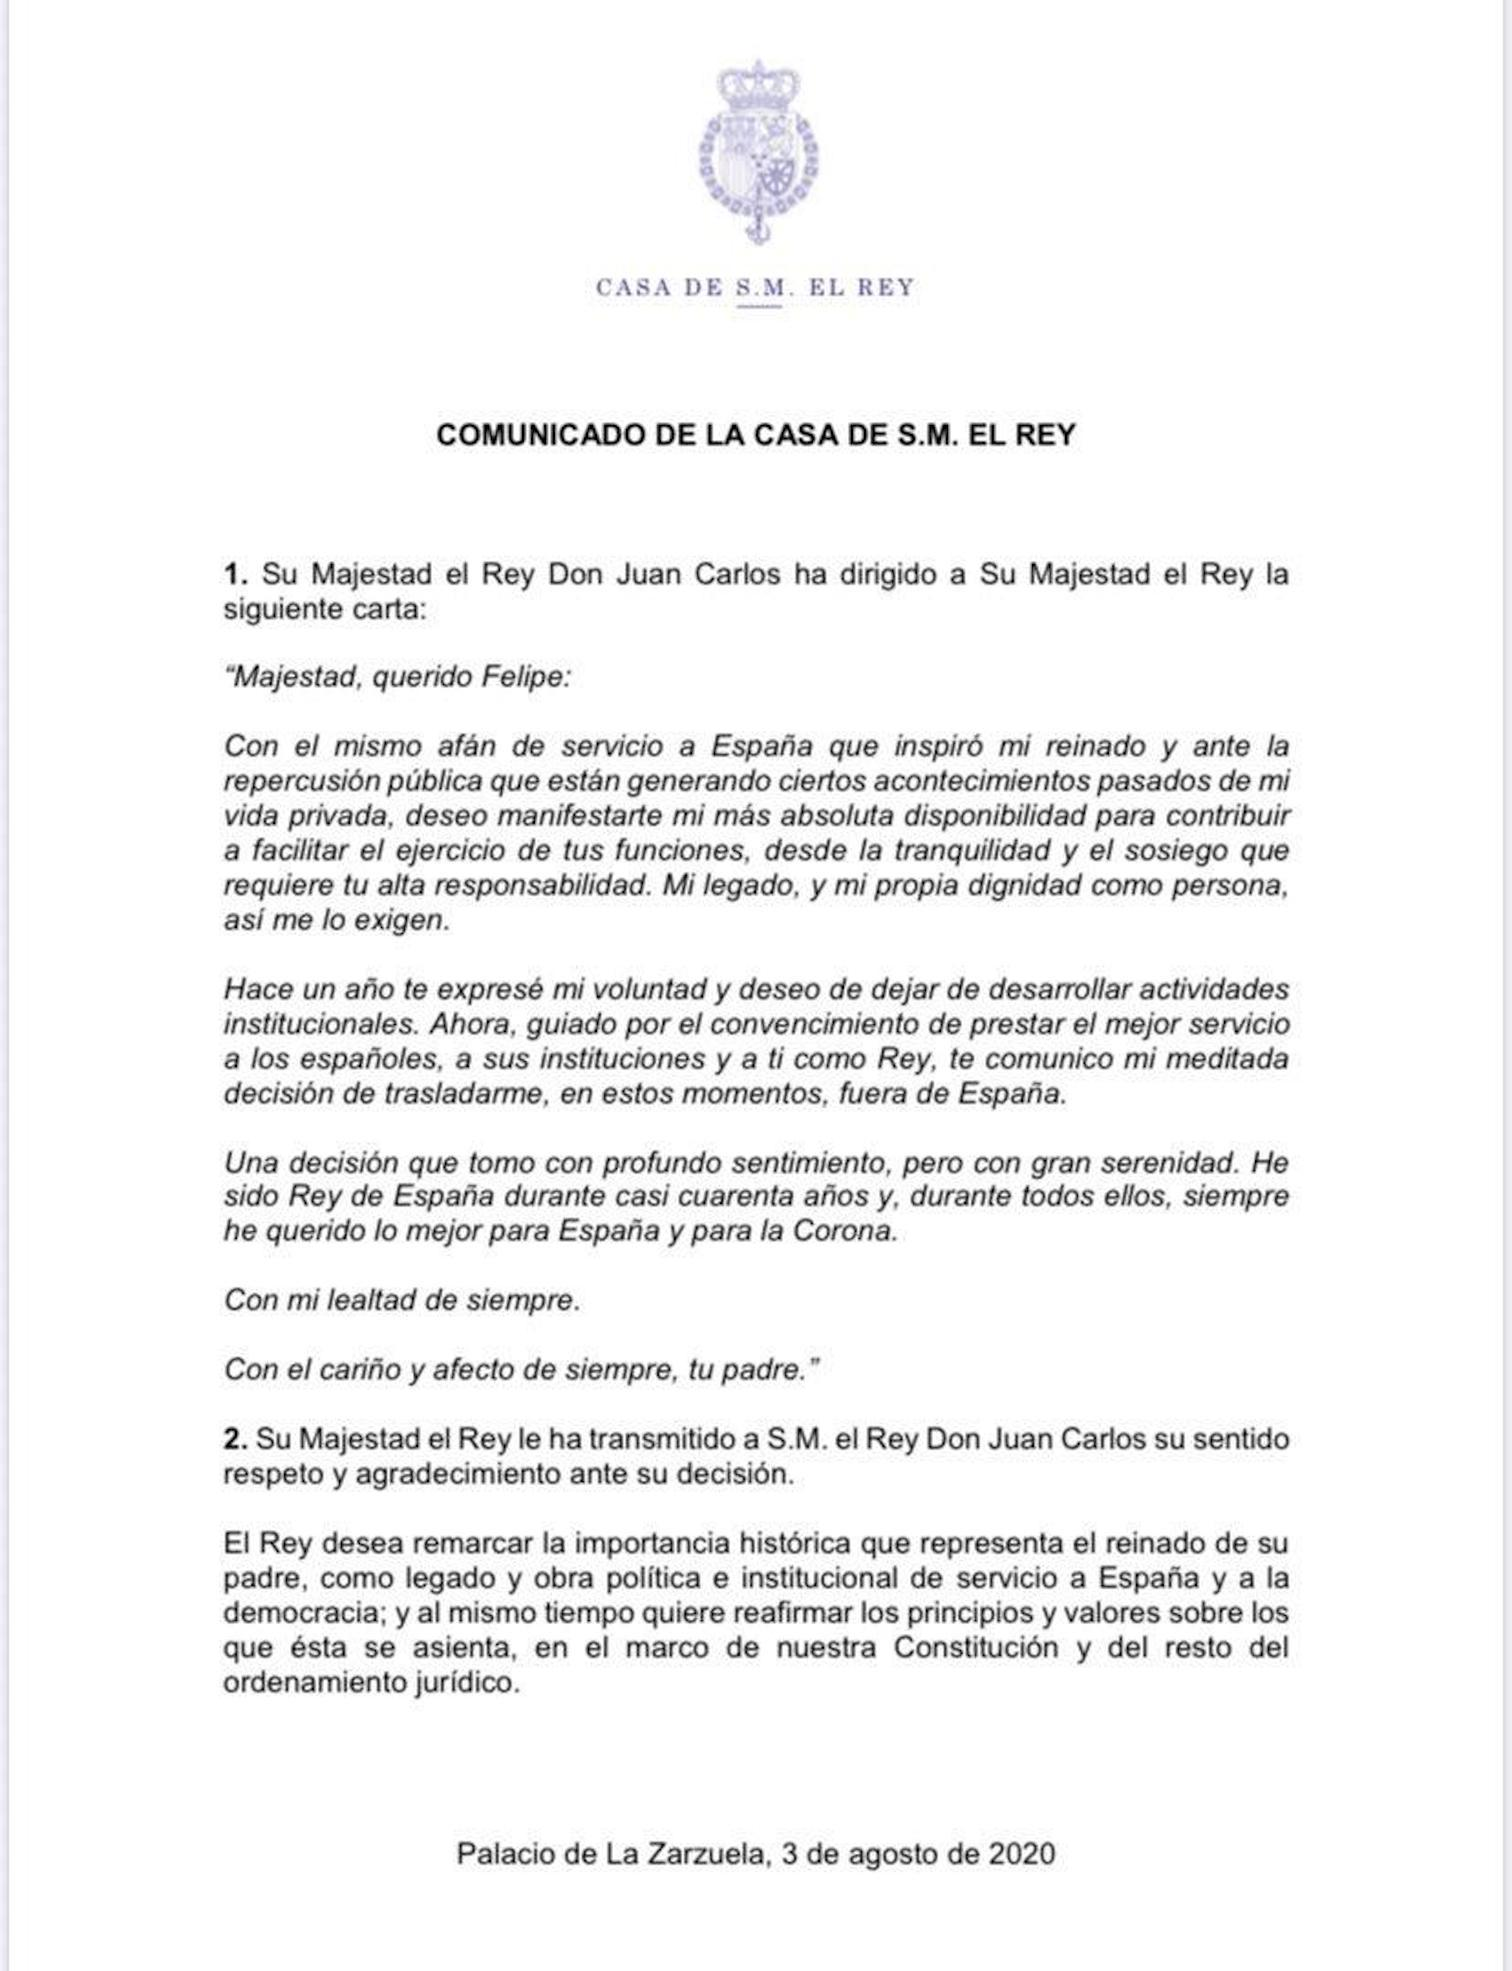 Letter from King Juan Carlos to King Felipe VI and the reply.